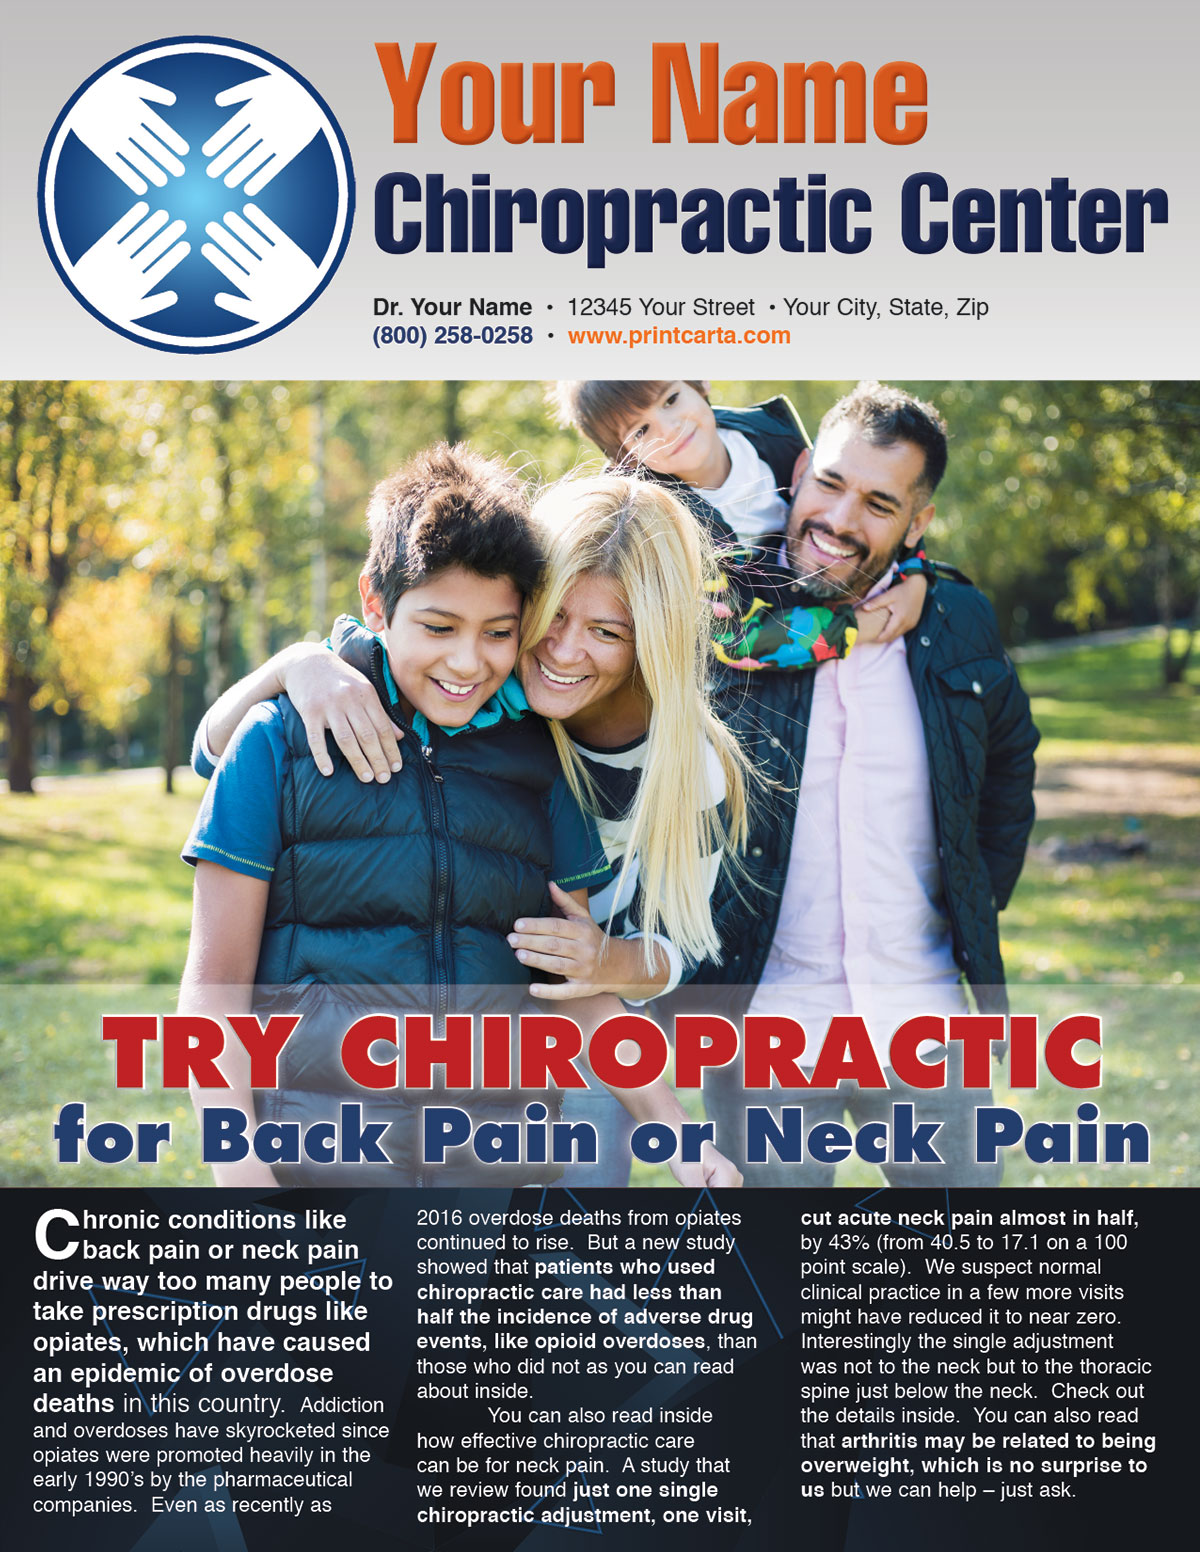 Try Chiropractic for Back or Neck Pain